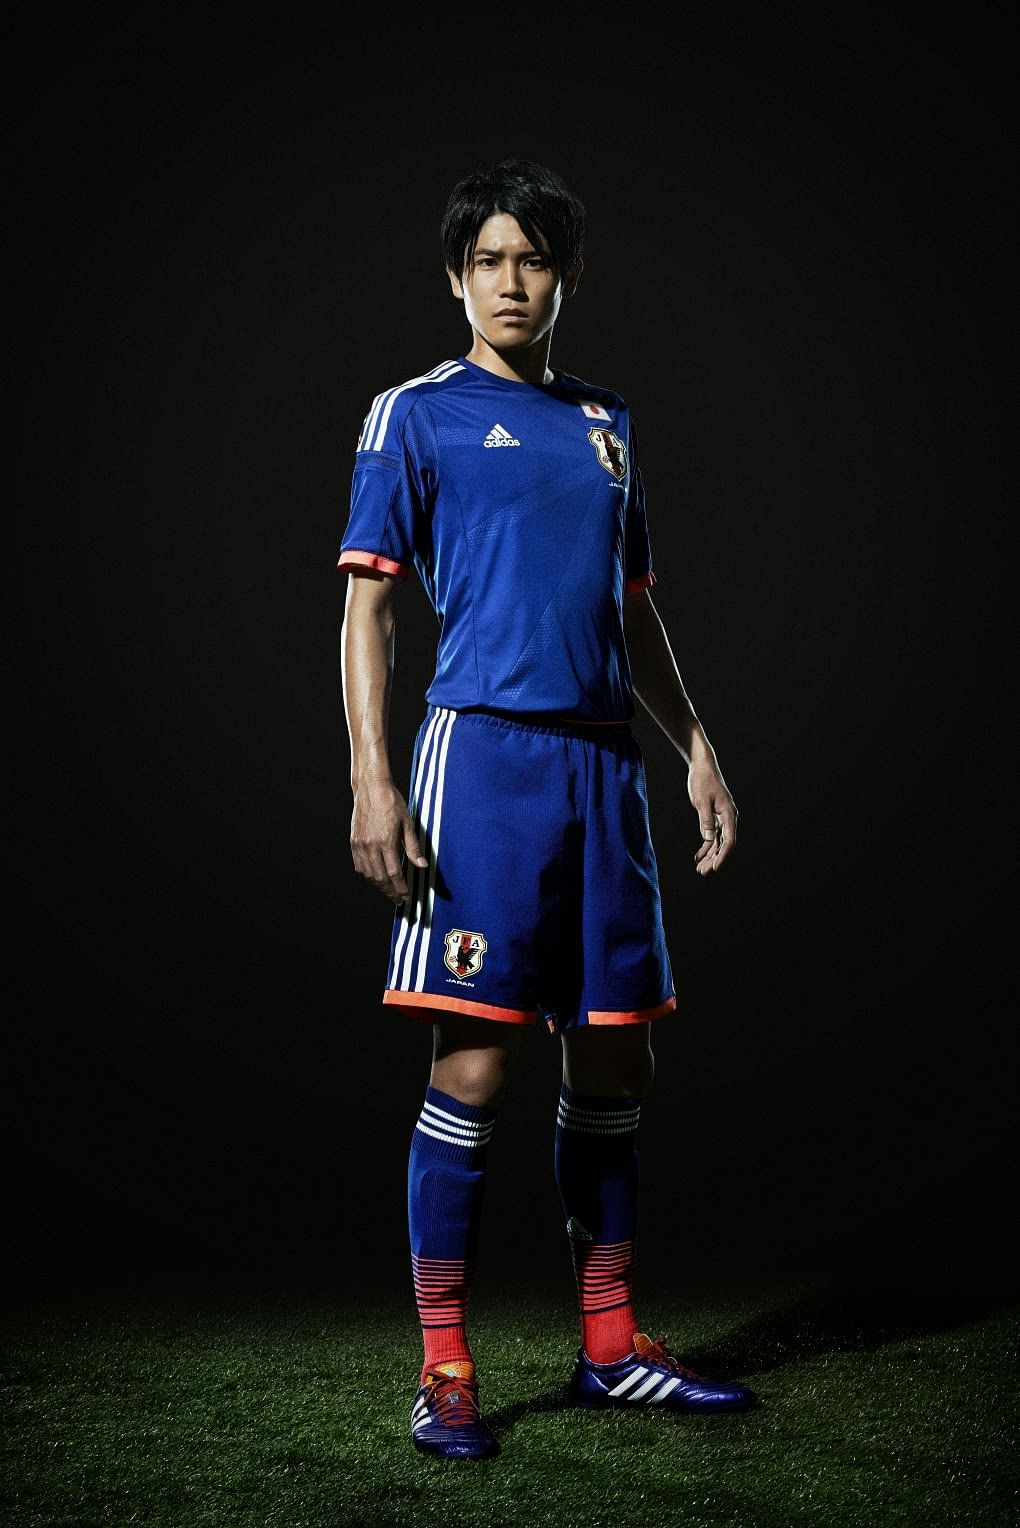 Adidas launch the Japan kit for 2014 FIFA World Cup